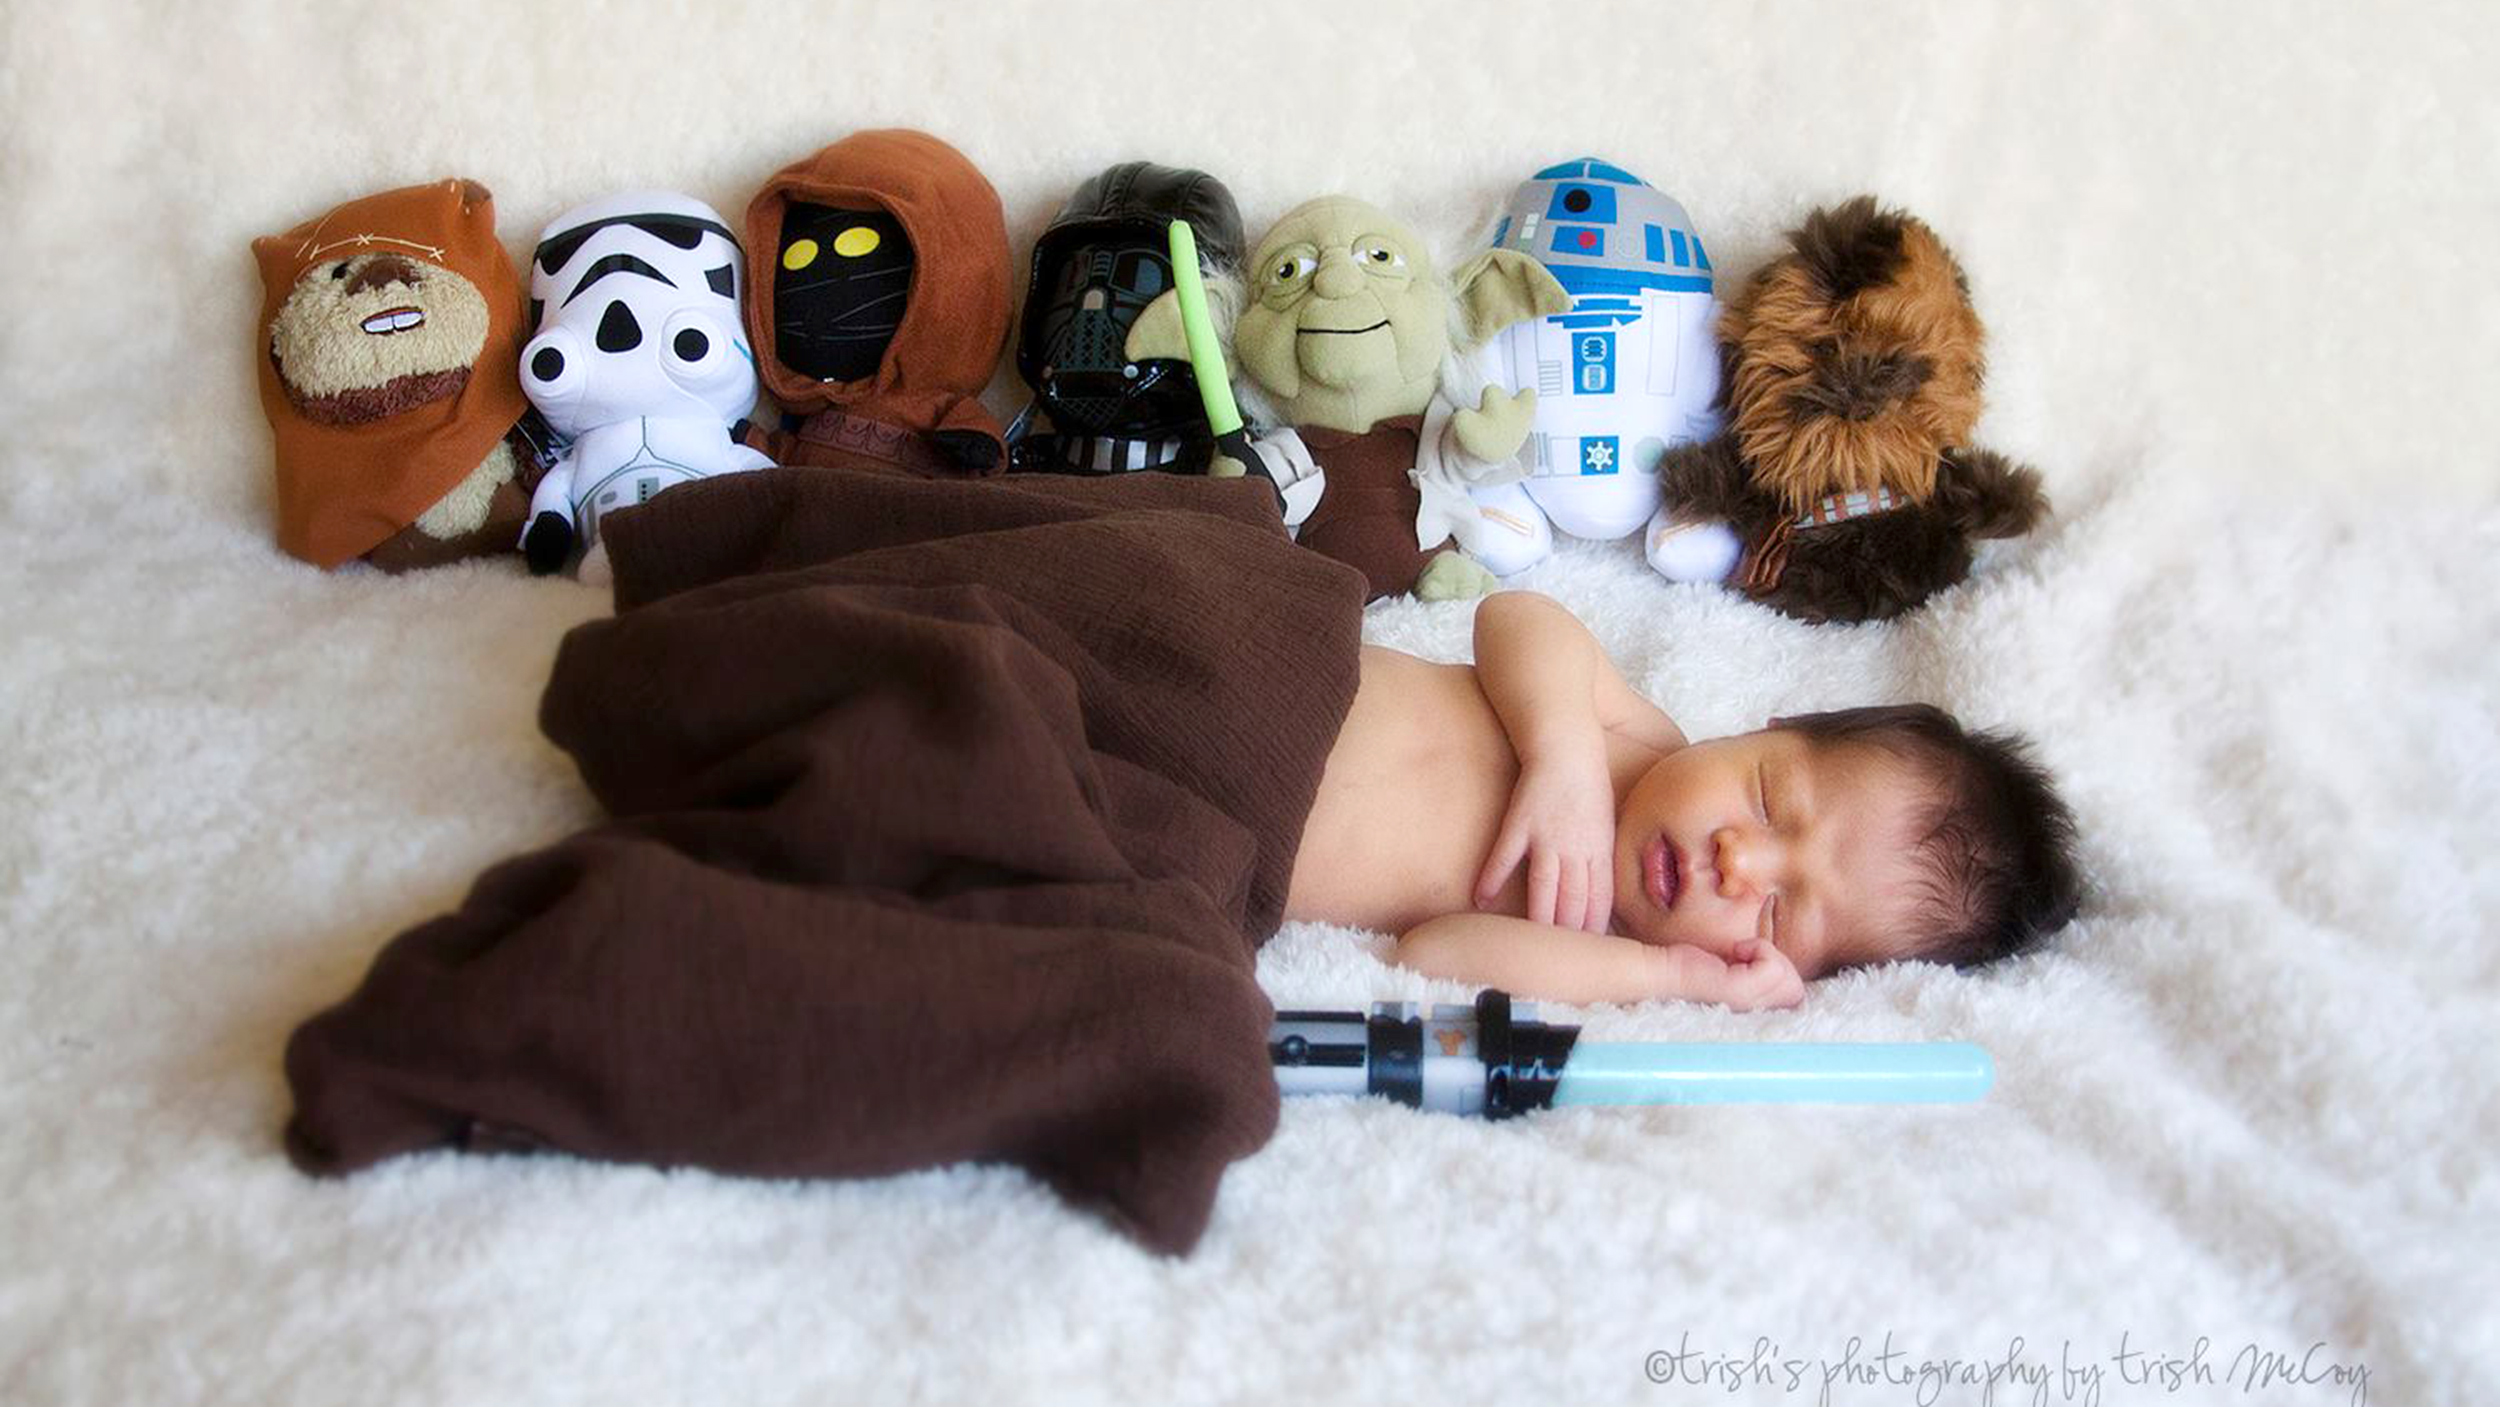 Miracle baby is out of this world cute in star wars themed photos